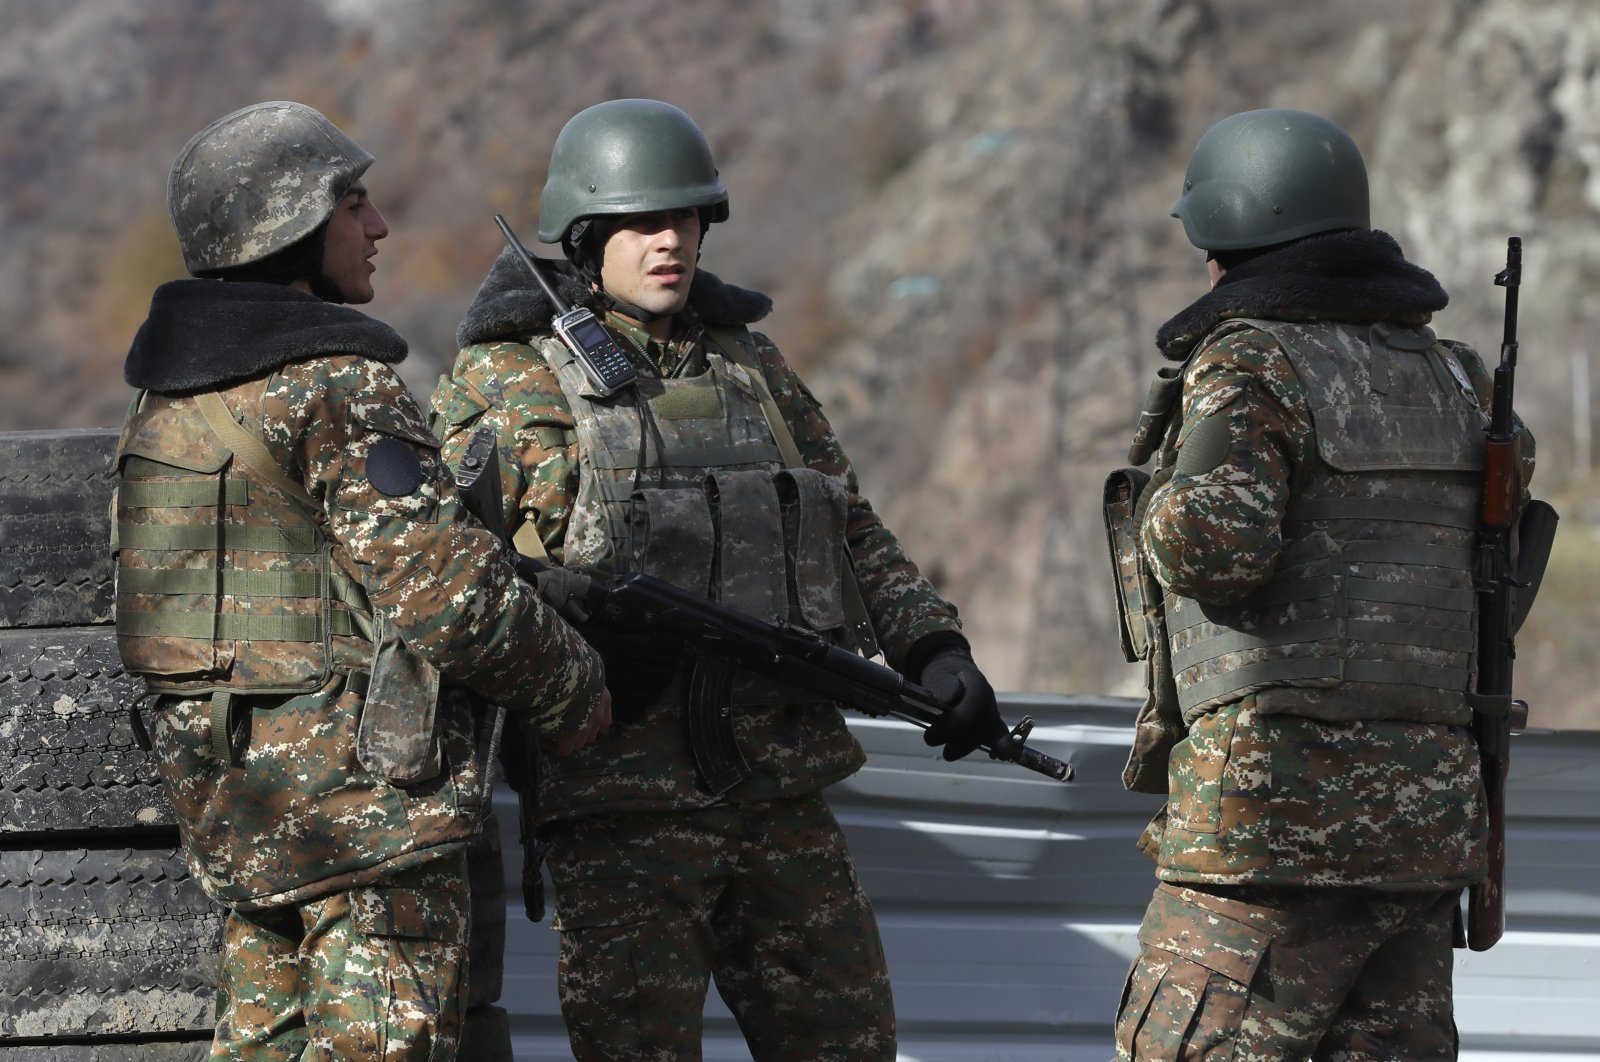 Armenian militants stand at a checkpoint near the village of Charektar in the occupied region of Nagorno-Karabakh at a new border with the Kalbajar district turned over to Azerbaijan, Nov. 25, 2020. (AP File Photo)